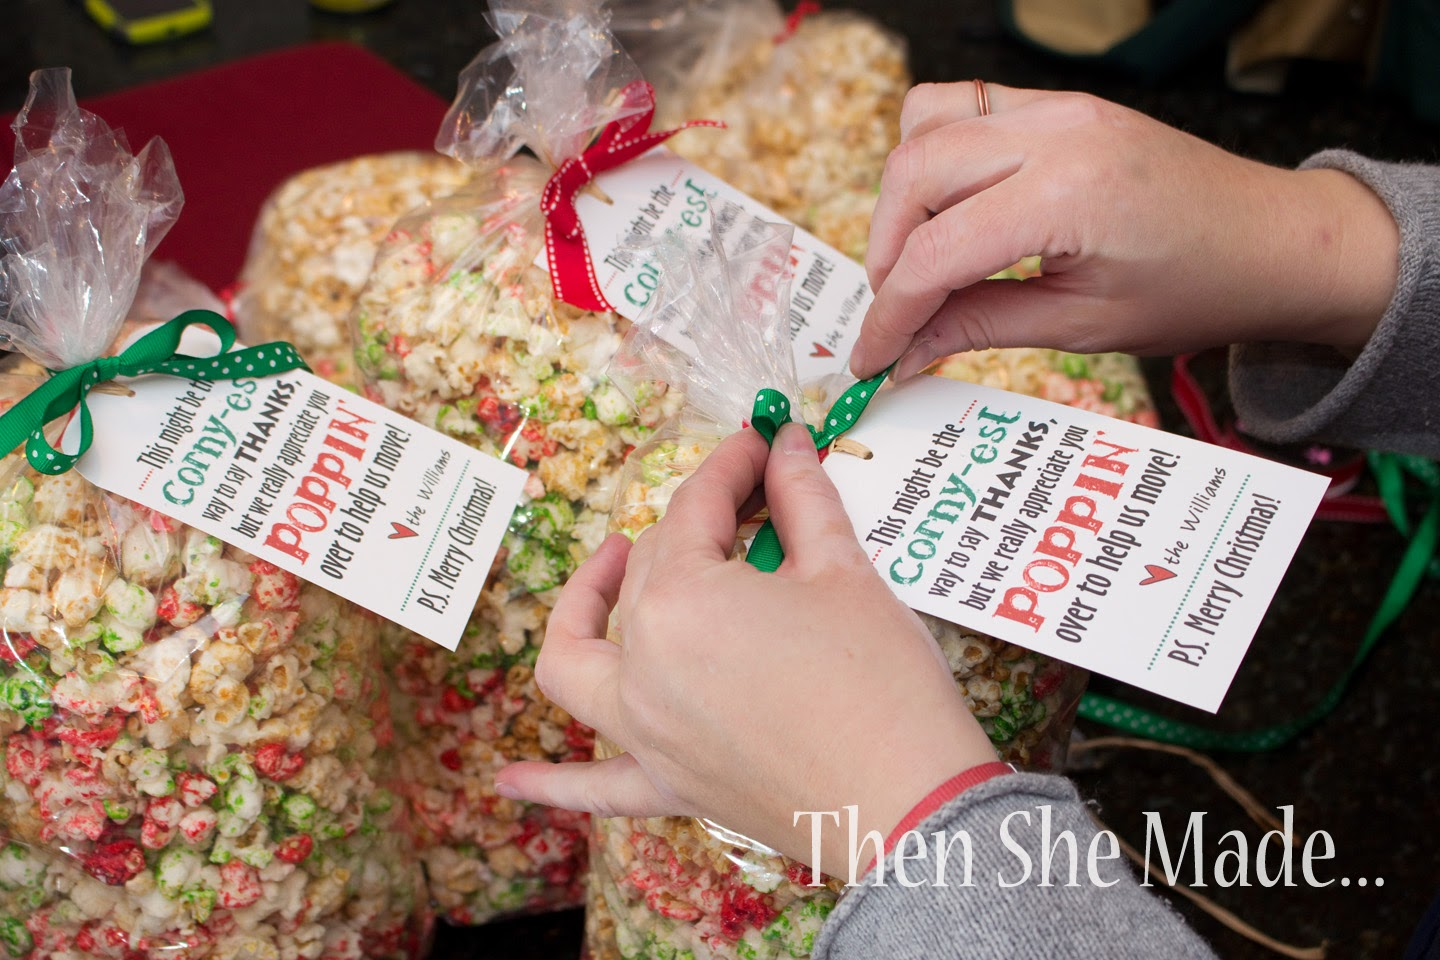 Then she made...: Popcorn Treat Christmas Gift